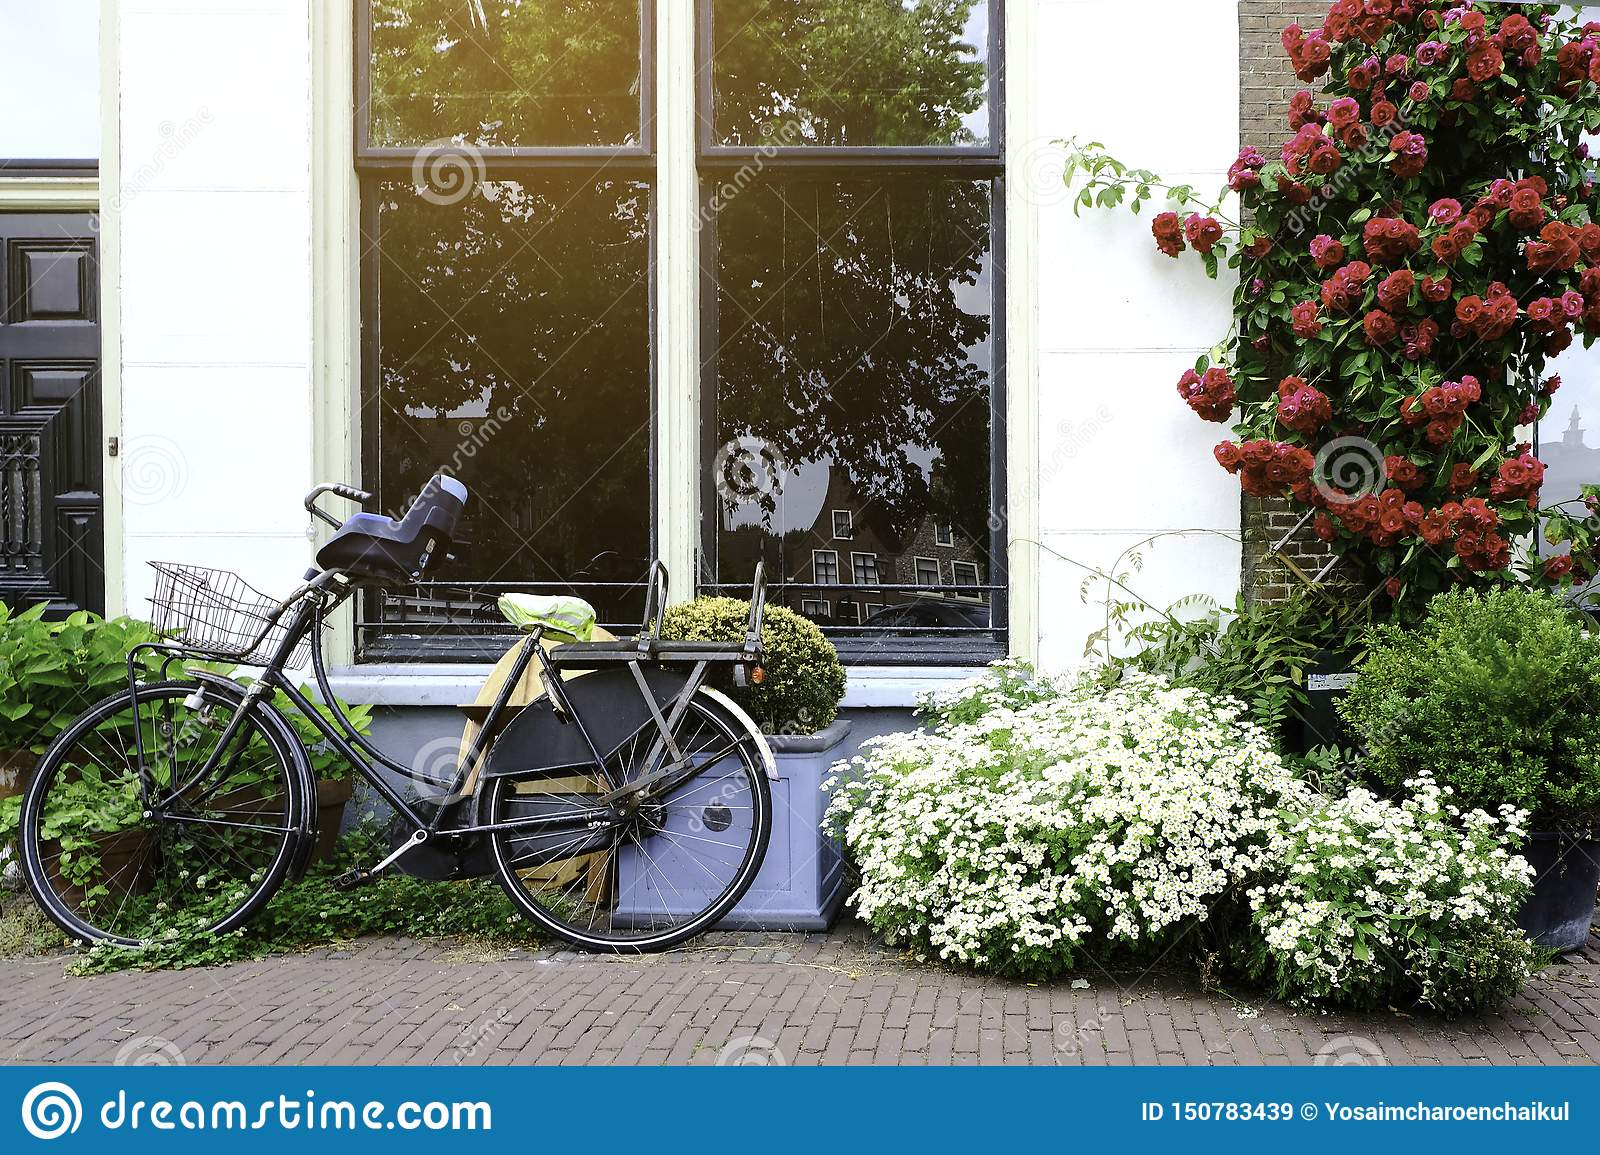 Ancient bikes parked in front of the house. Bicycle leaning on the big windows at roadside